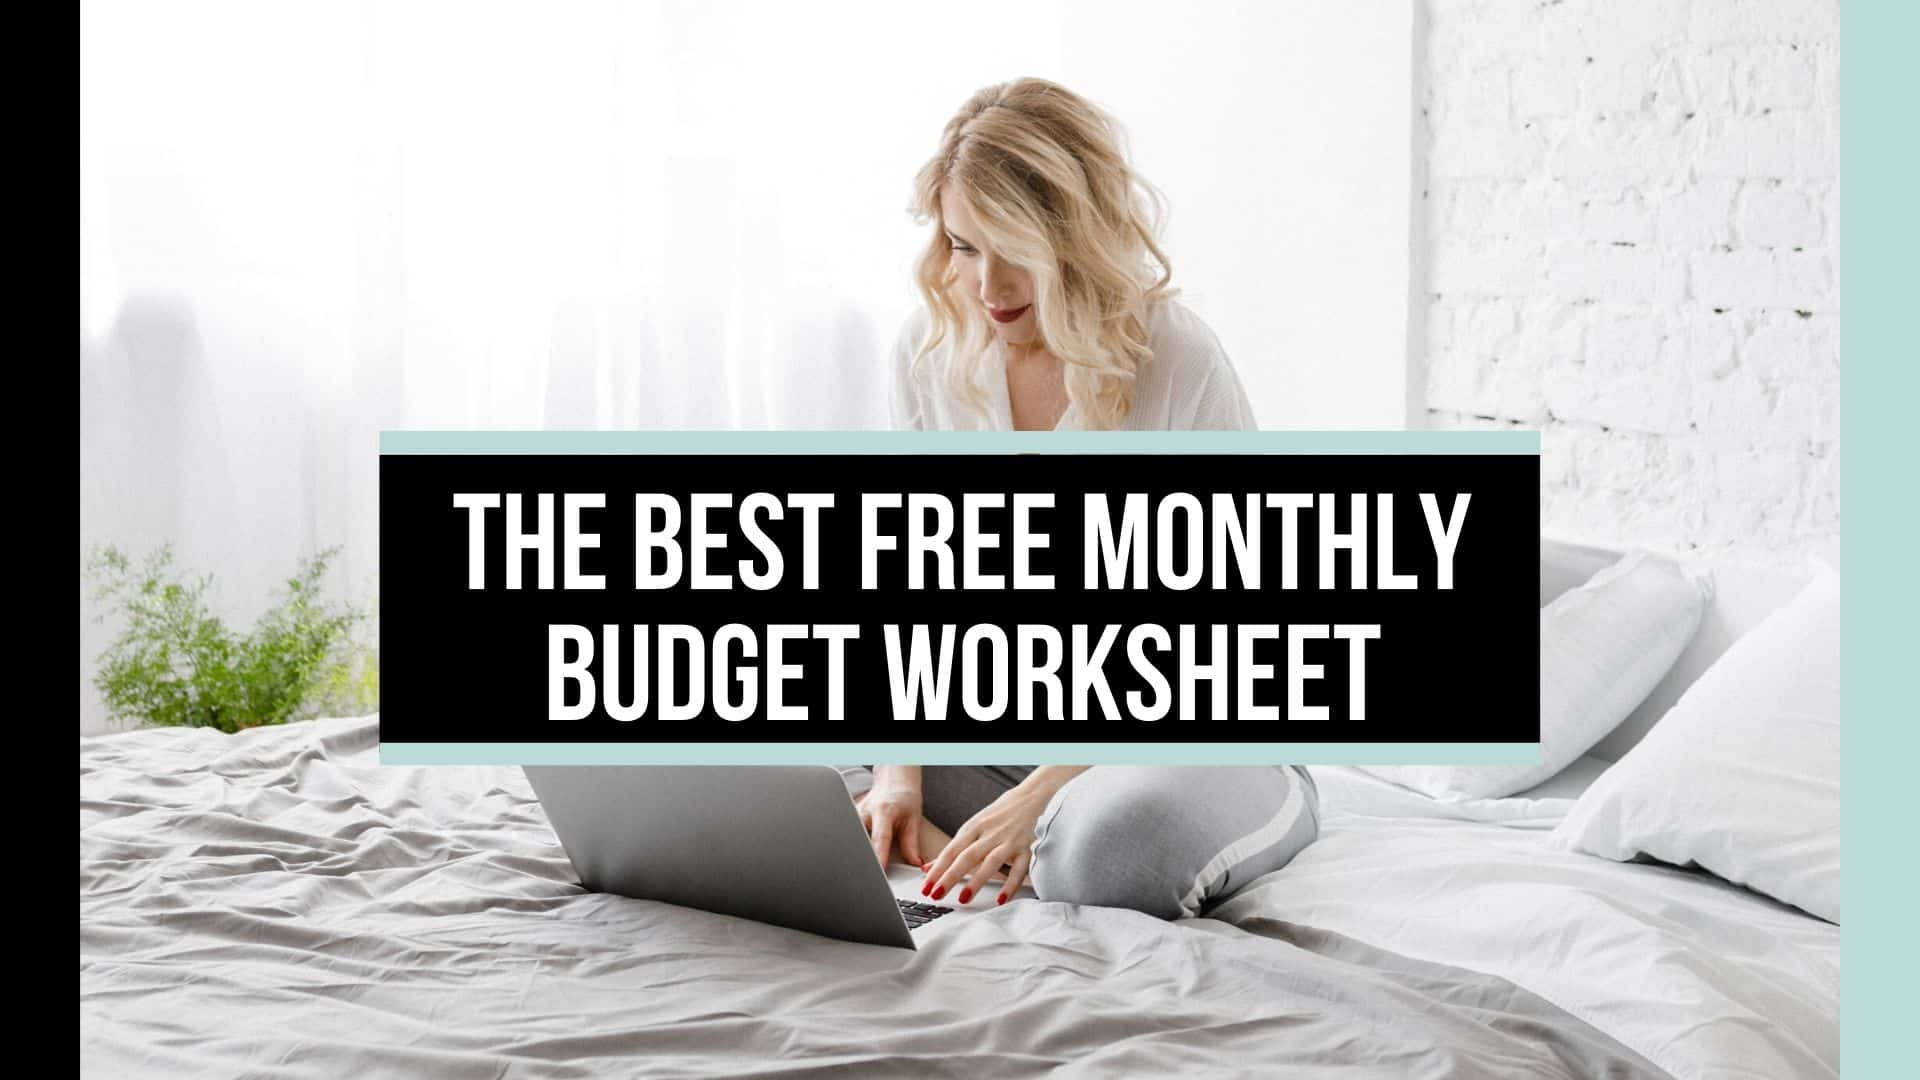 The best free monthly budget worksheet